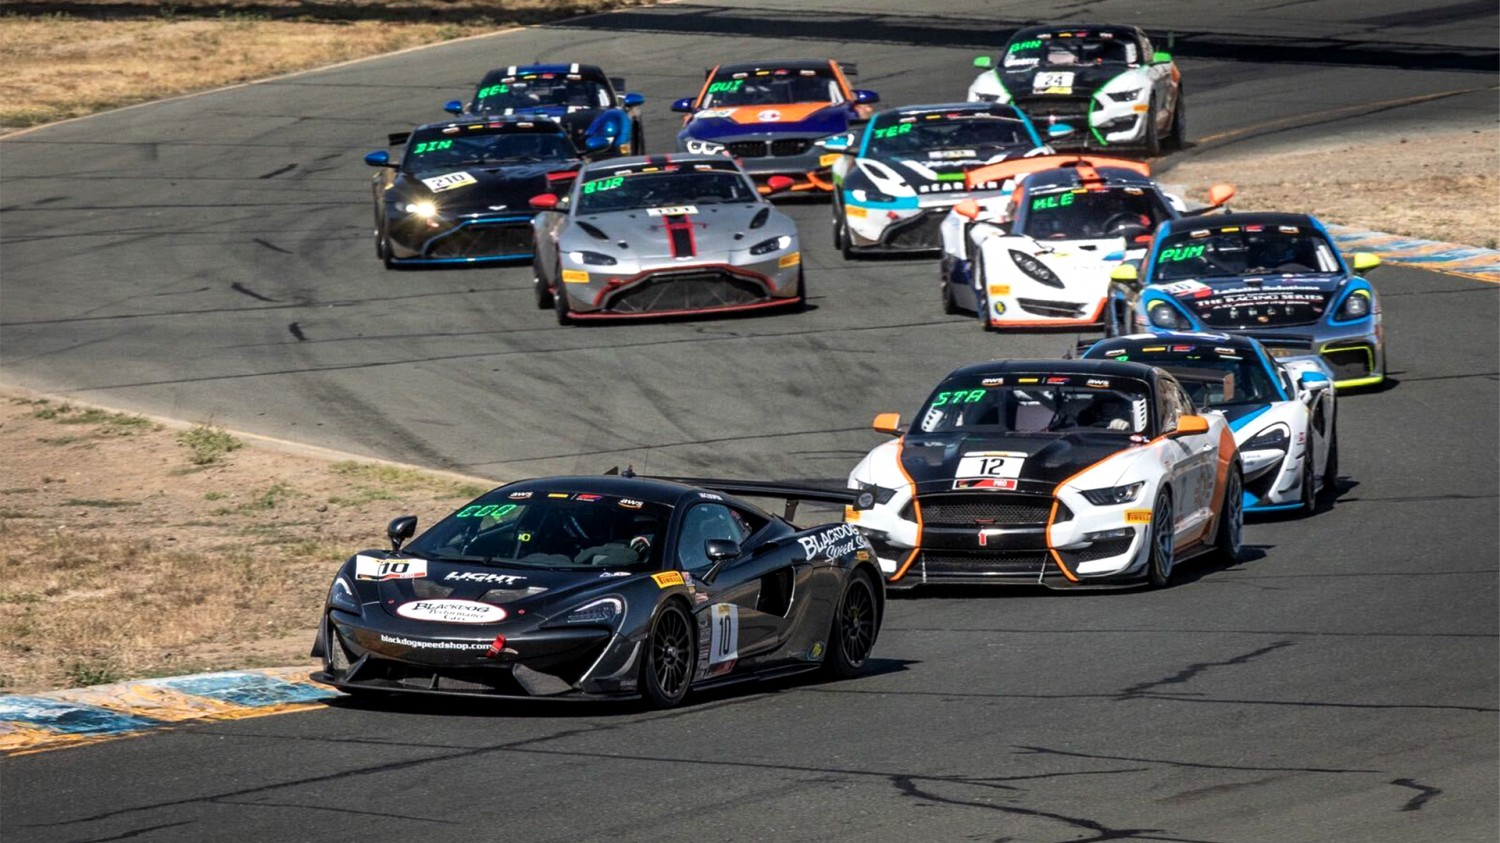 Cooper Sweeps Pirelli GT4 America Sprint Weekend in Wine Country